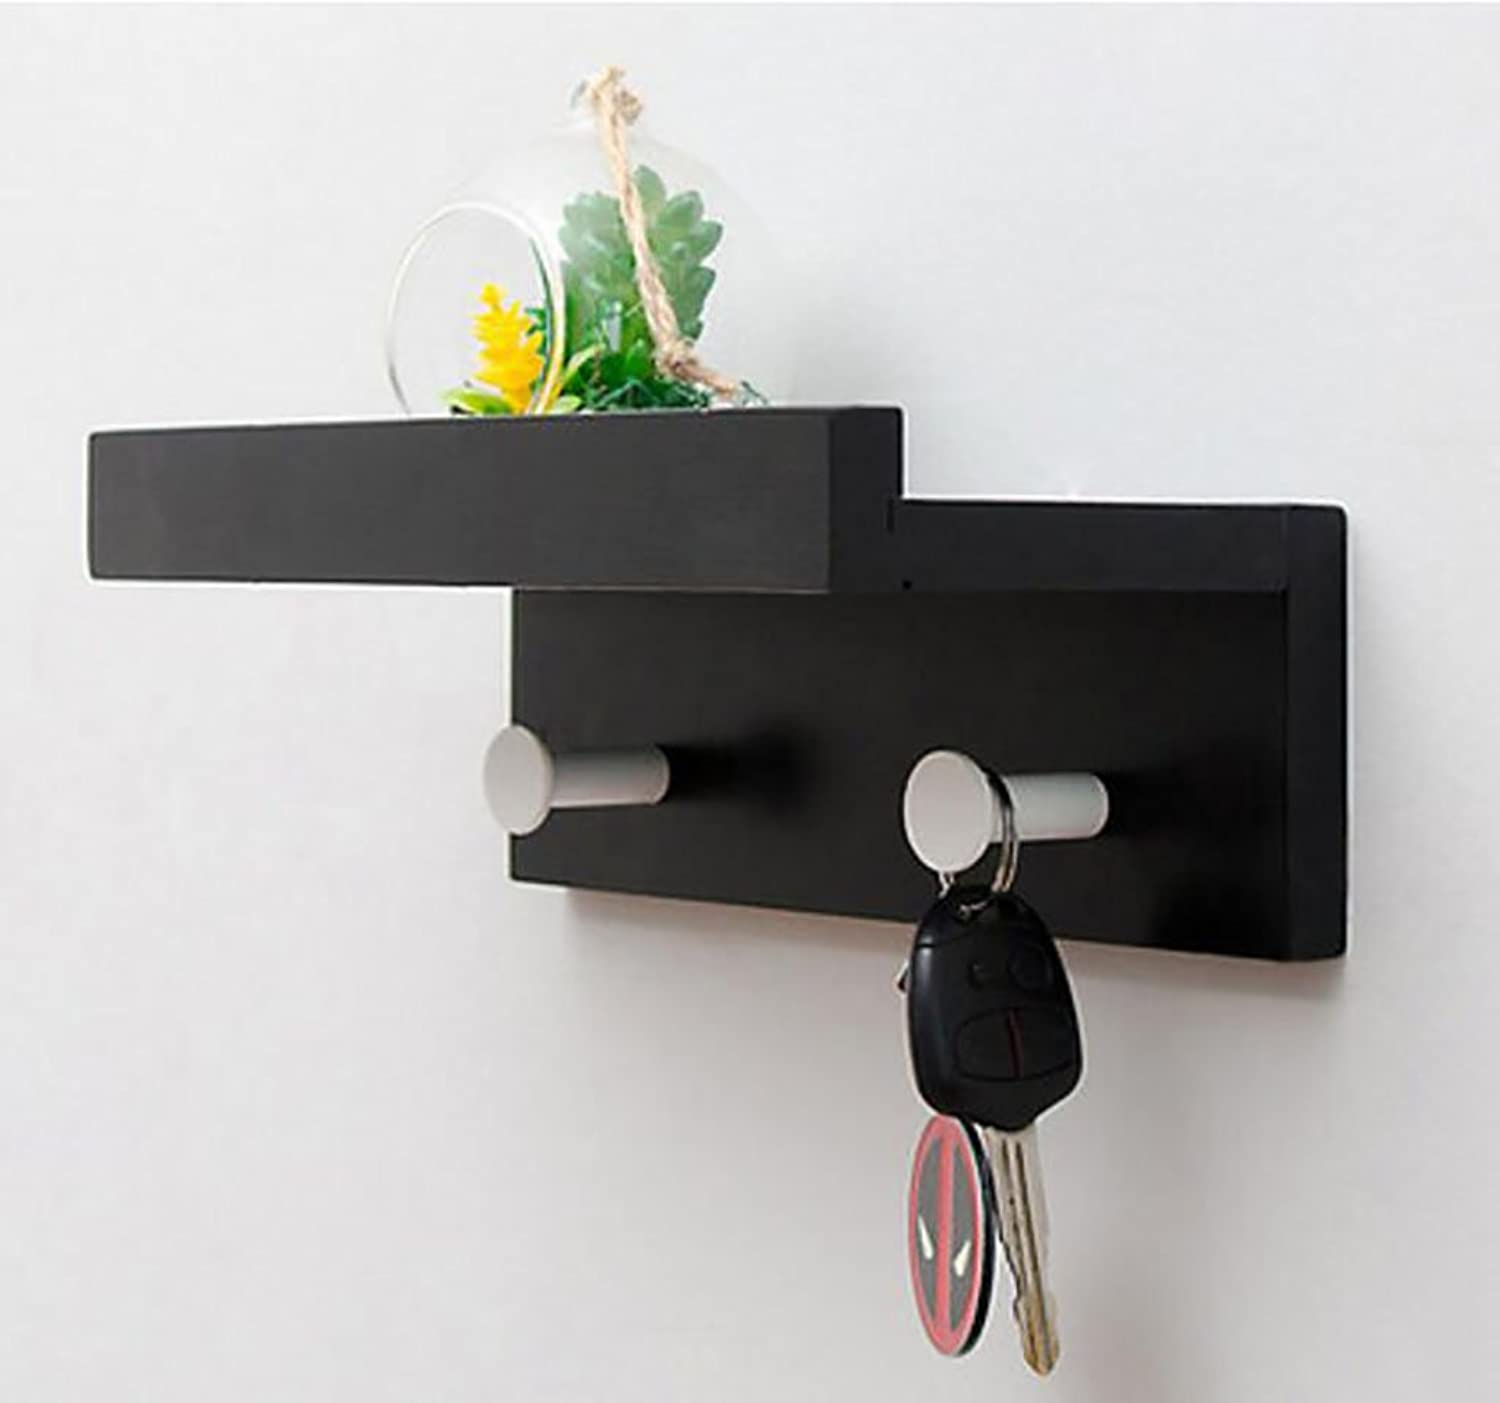 Entrance Clothes Hooks Shelf Walls Creative Clothes Hooks Wall Hangers Wall Hooks Hooks (Size   L22.7w12h8cm)